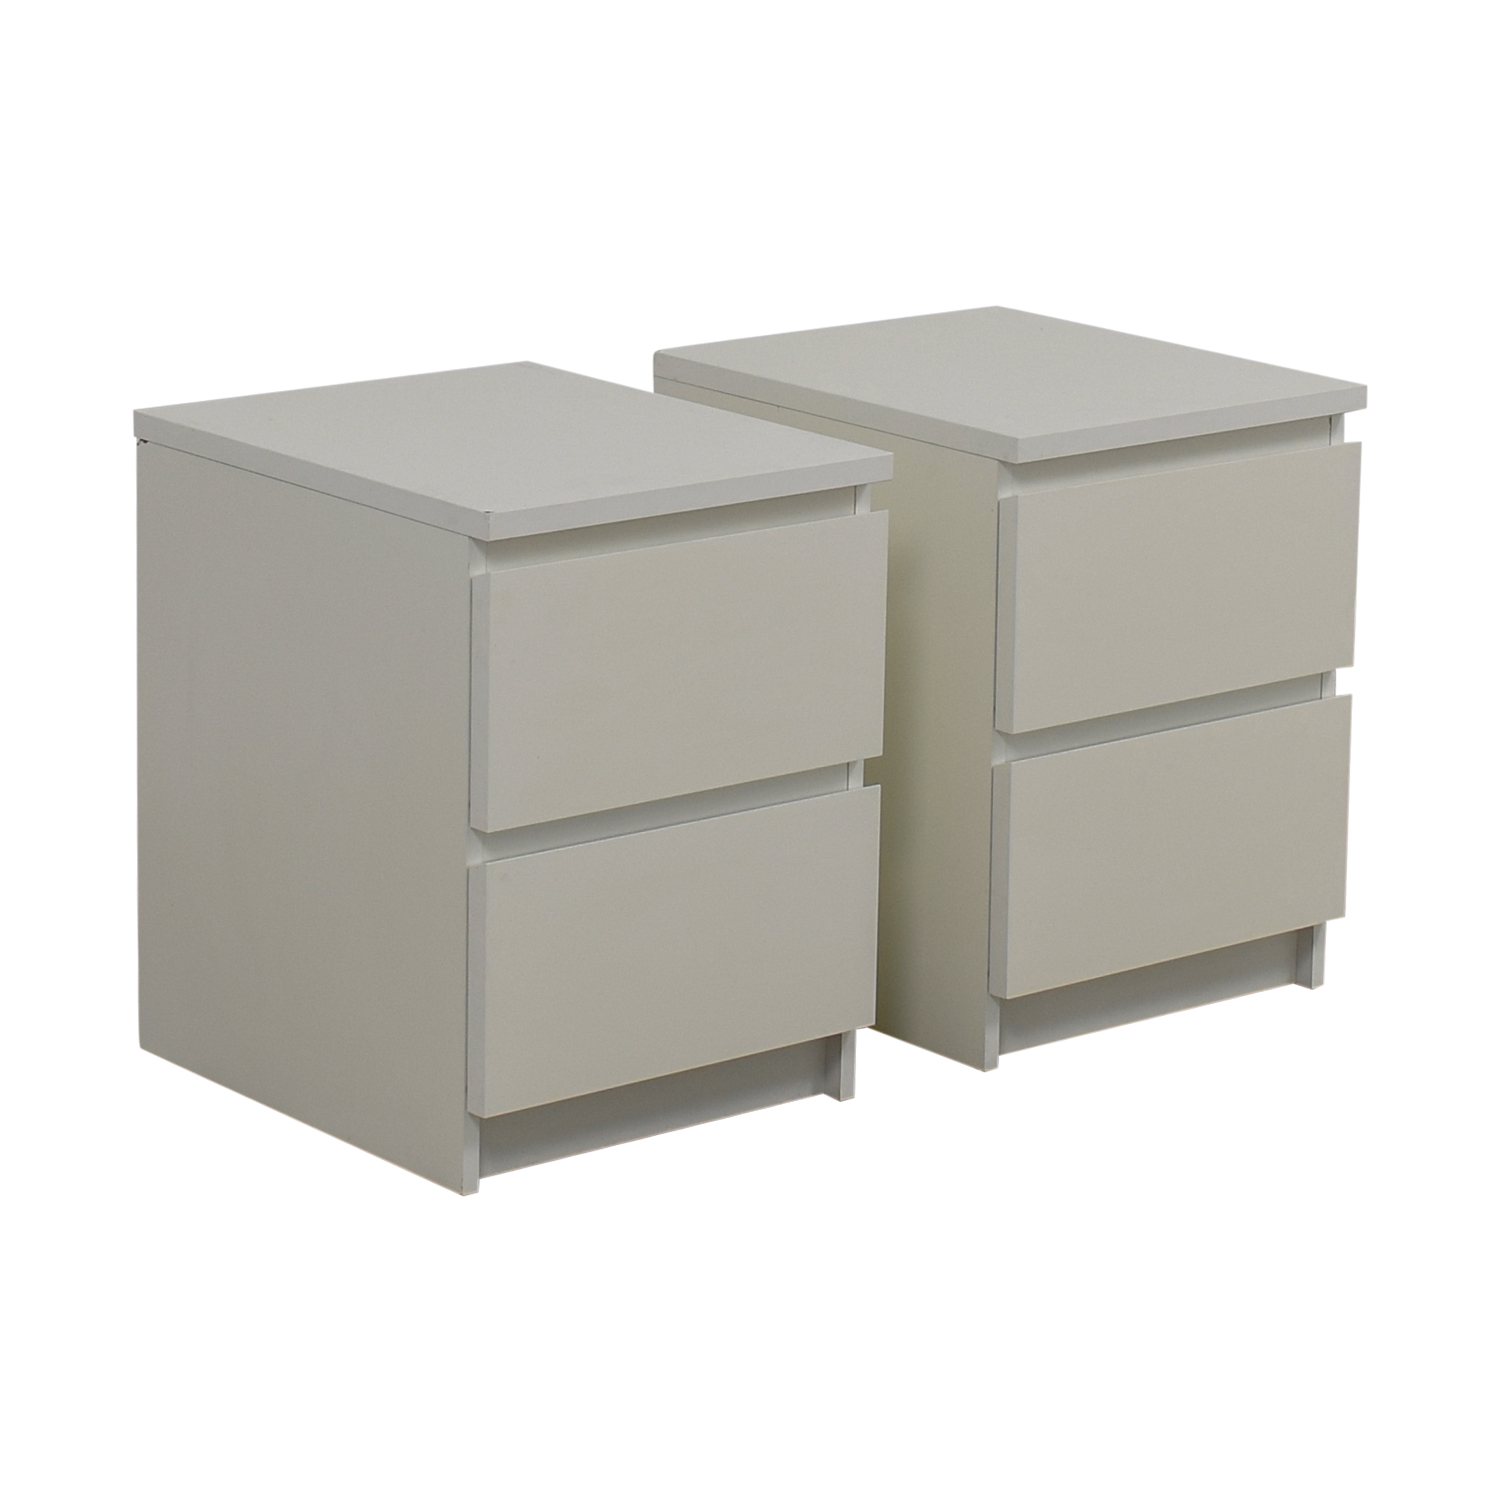 53 OFF IKEA IKEA Malm TwoDrawer White End Tables Tables